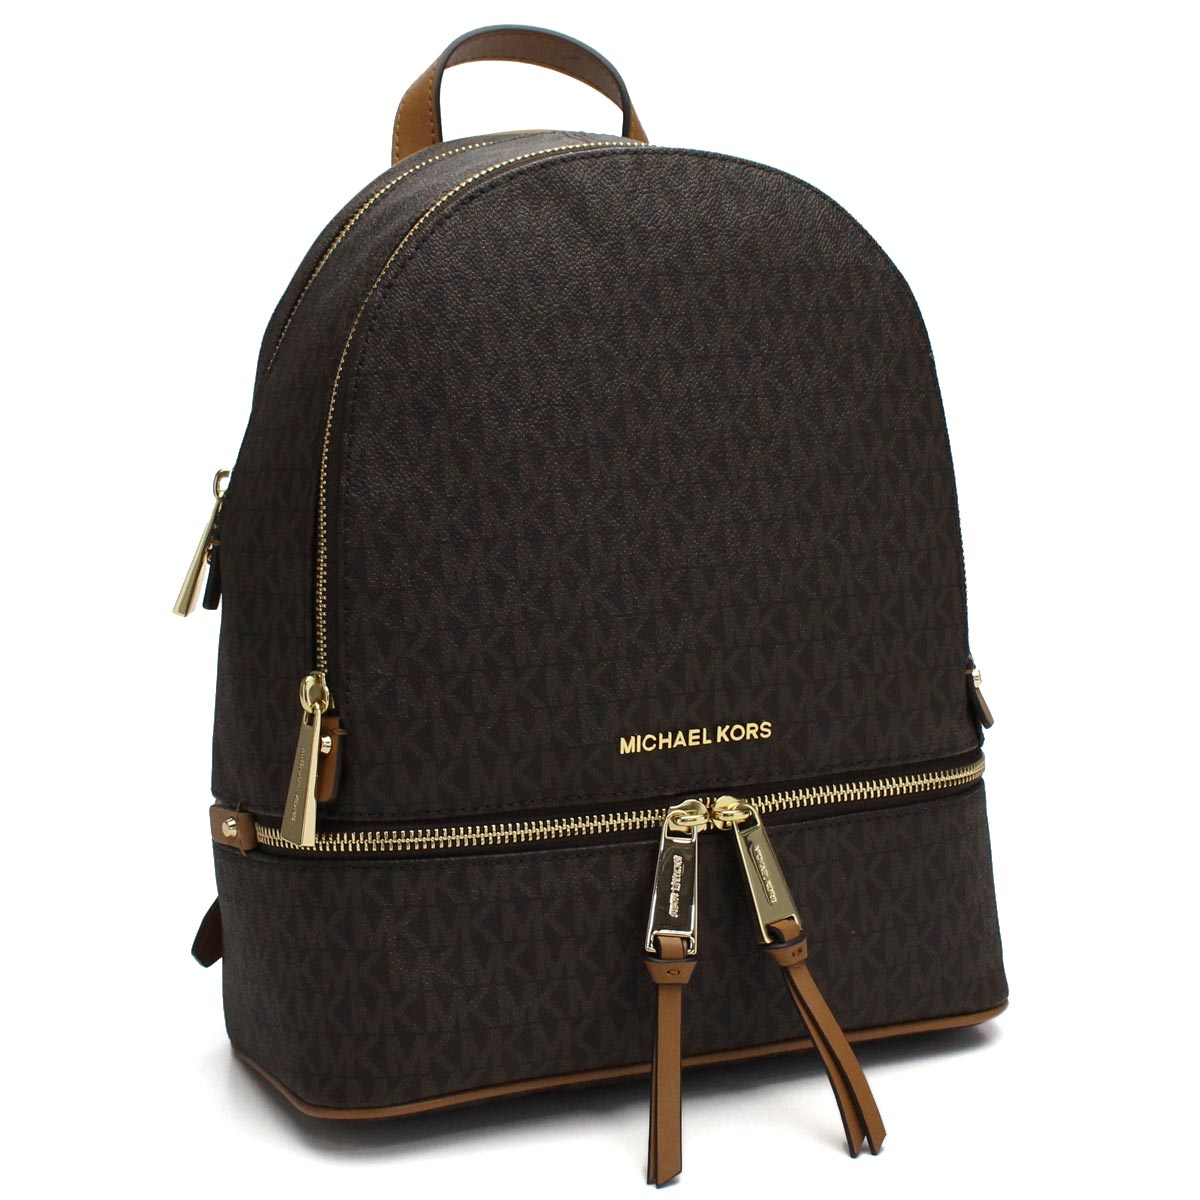 f6c4da1b9512 Bighit The total brand wholesale: Michael Kors (MICHAEL KORS) RHEA ZIP MK  signature rucksack 30S7GEZB1B BROWN brown system | Rakuten Global Market